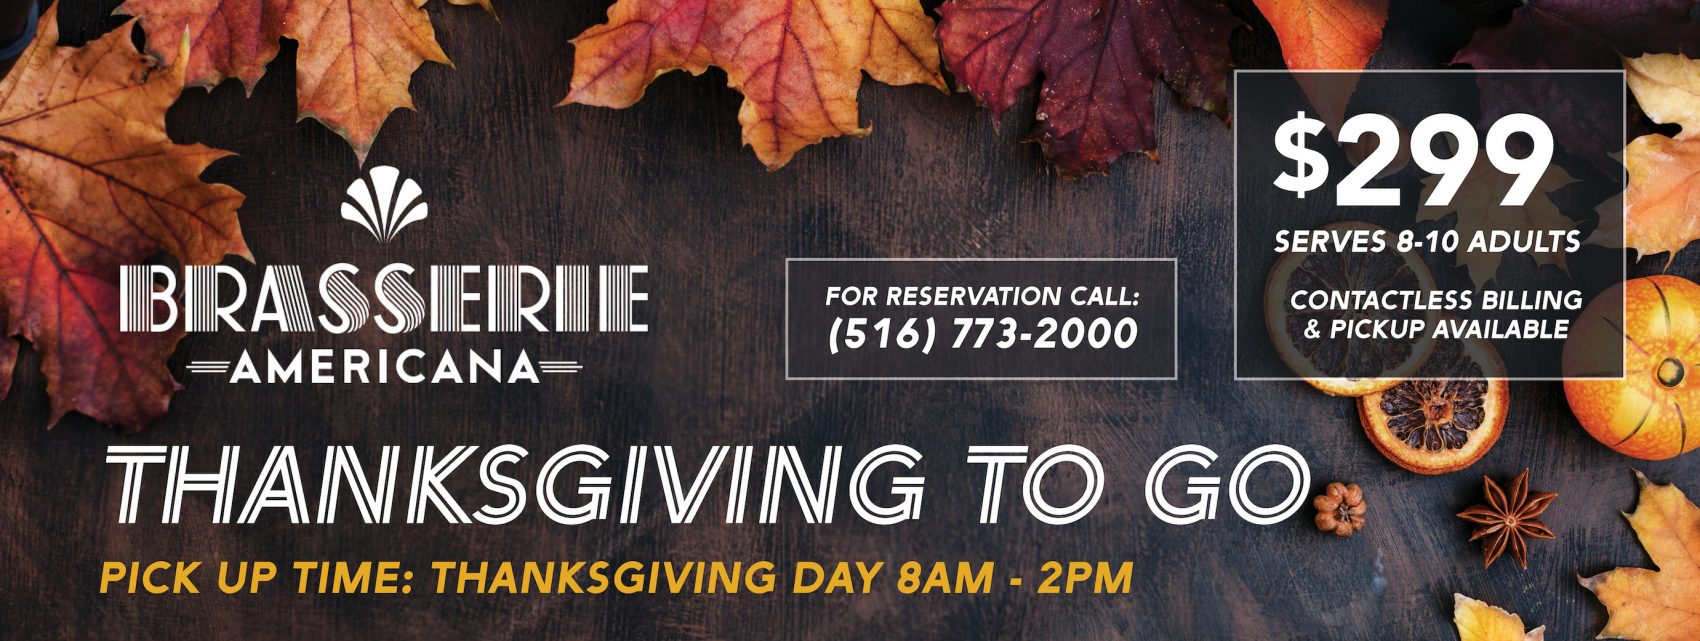 thanksgiving to go brasserie americana $299 serves 8-10 guests